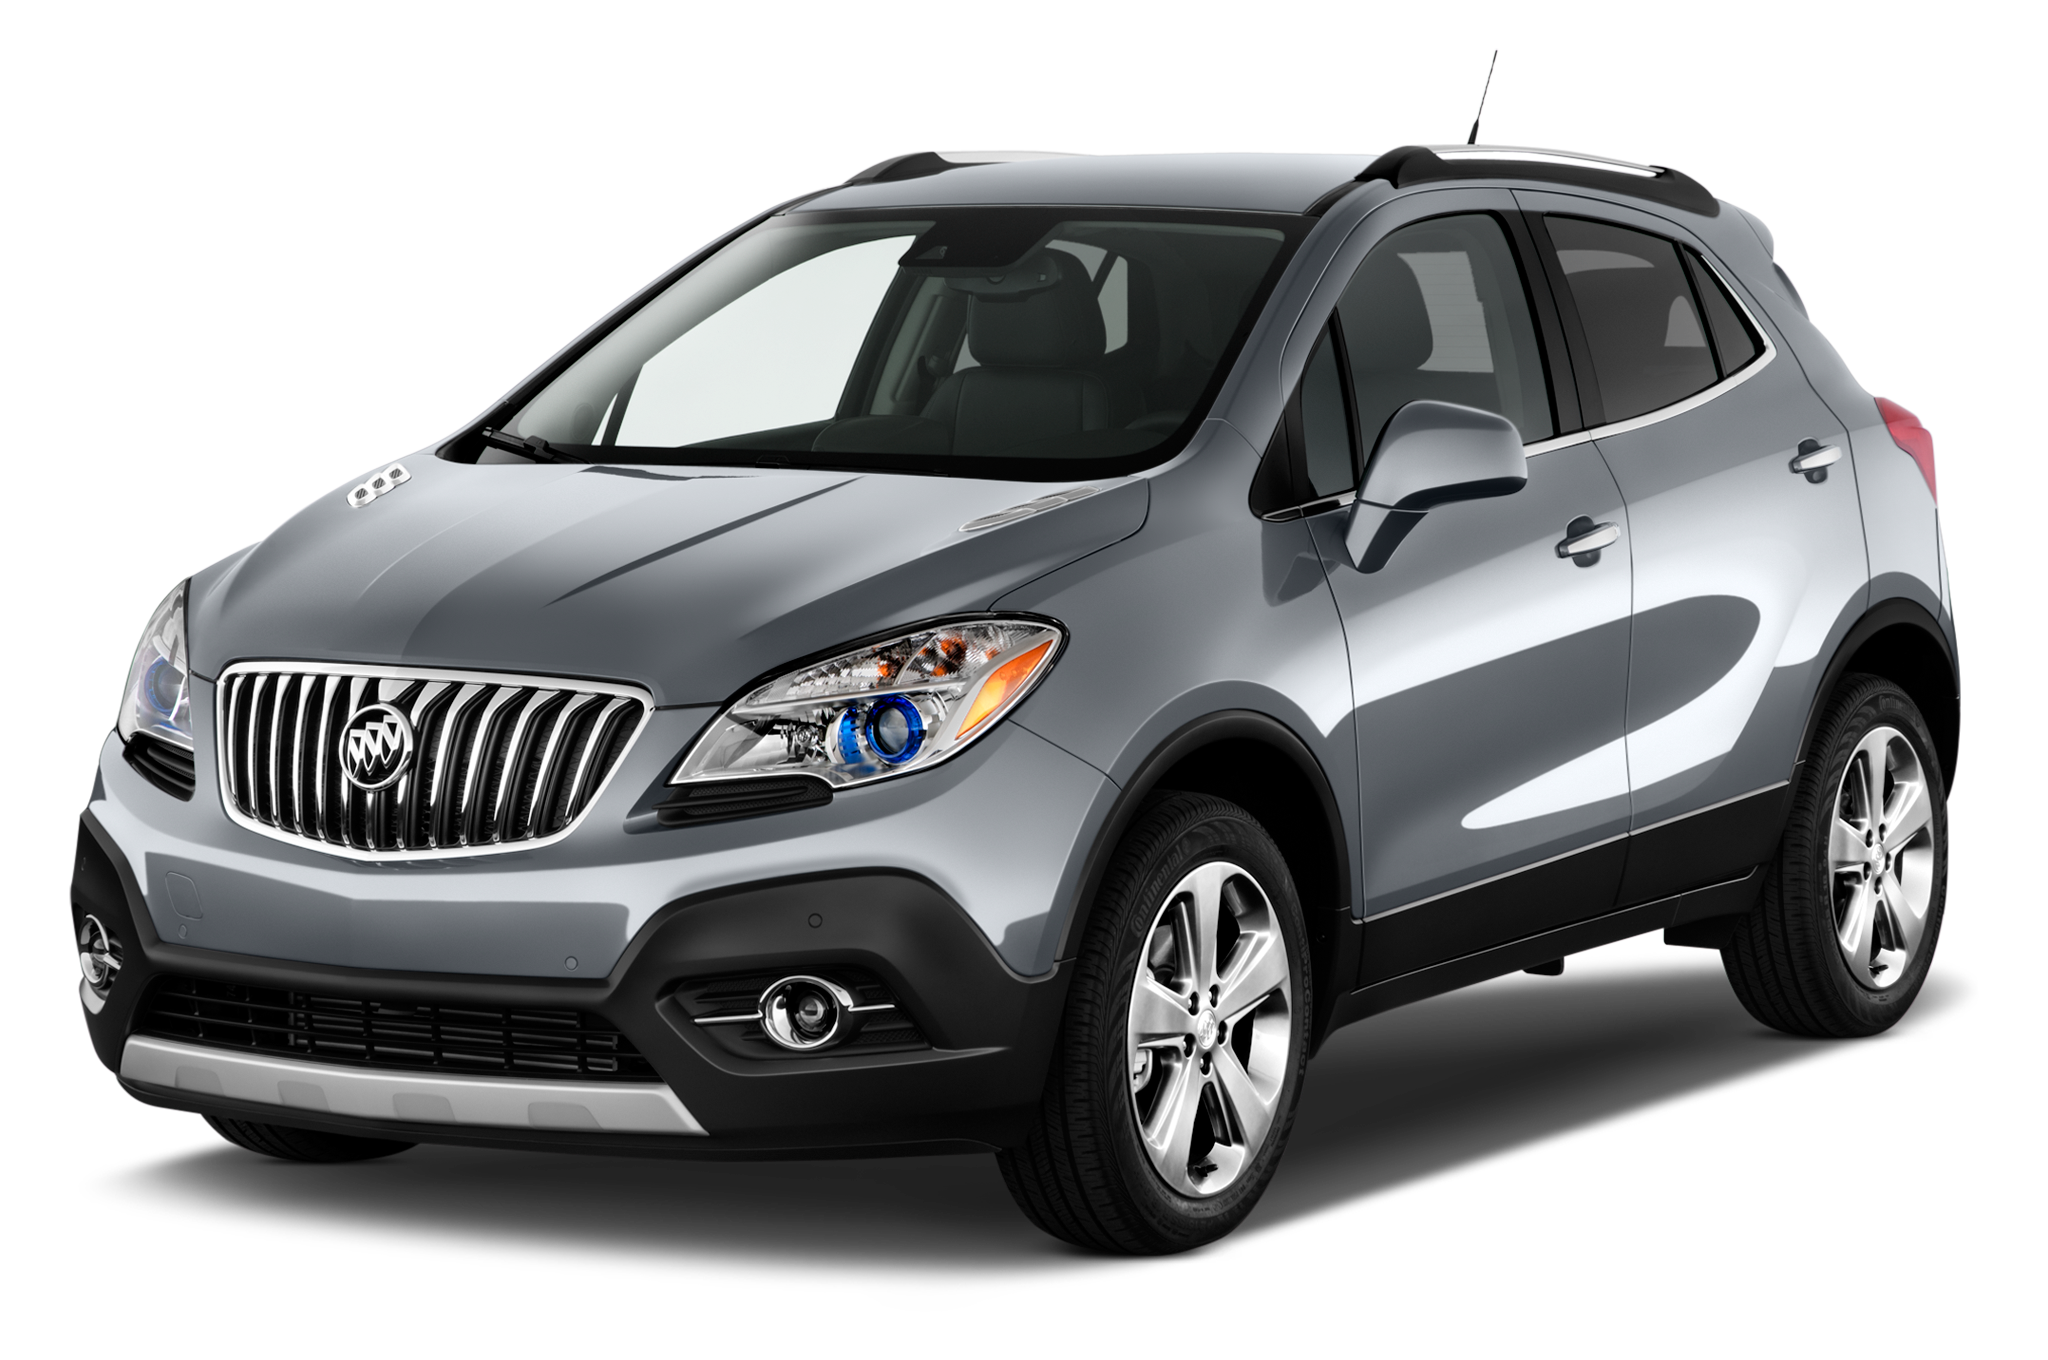 feature flick 2013 buick encore more nimble than dinosaurs. Black Bedroom Furniture Sets. Home Design Ideas